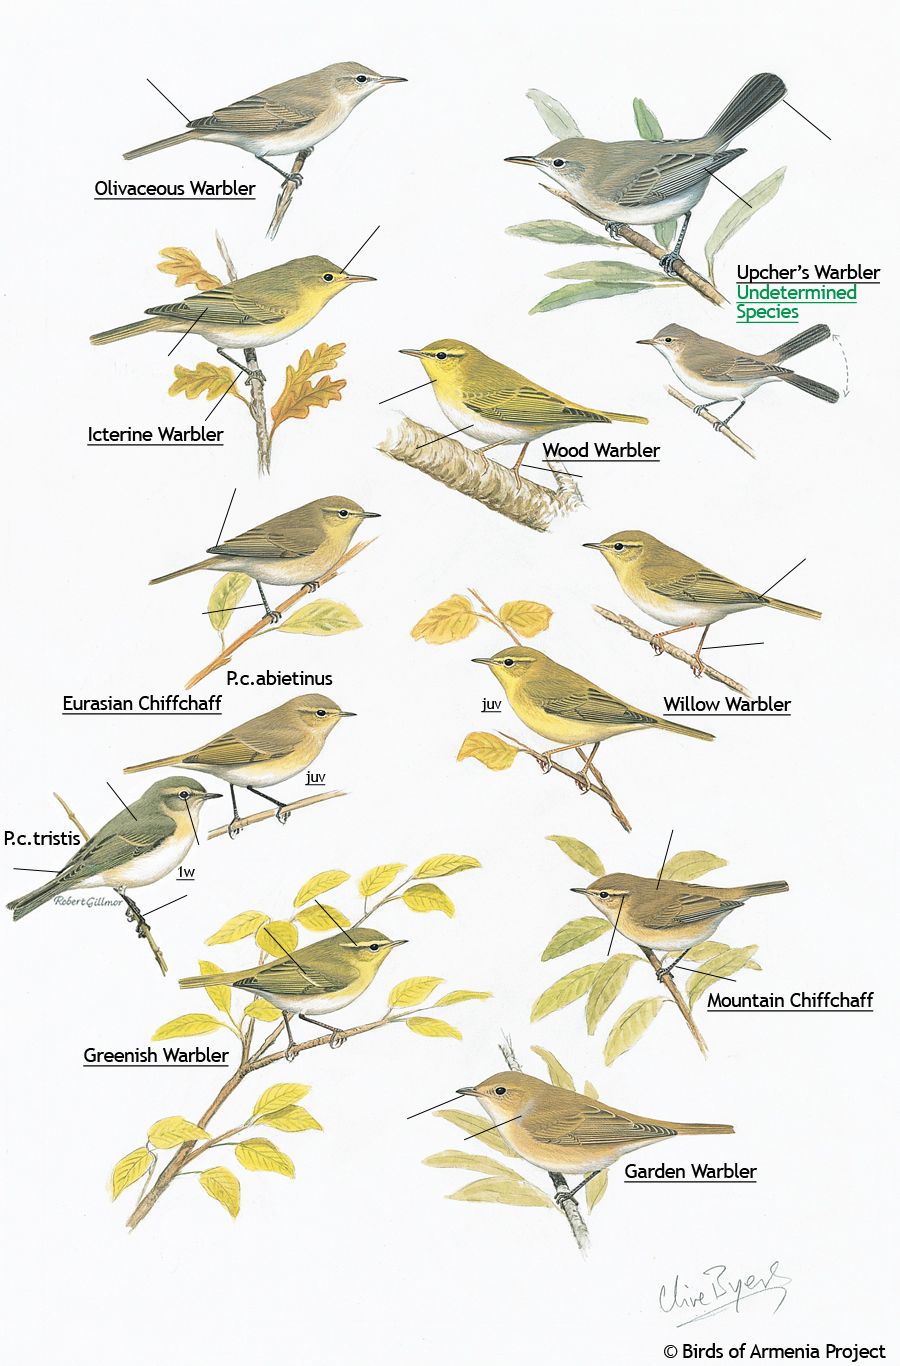 Warblers and Chiffchaffs